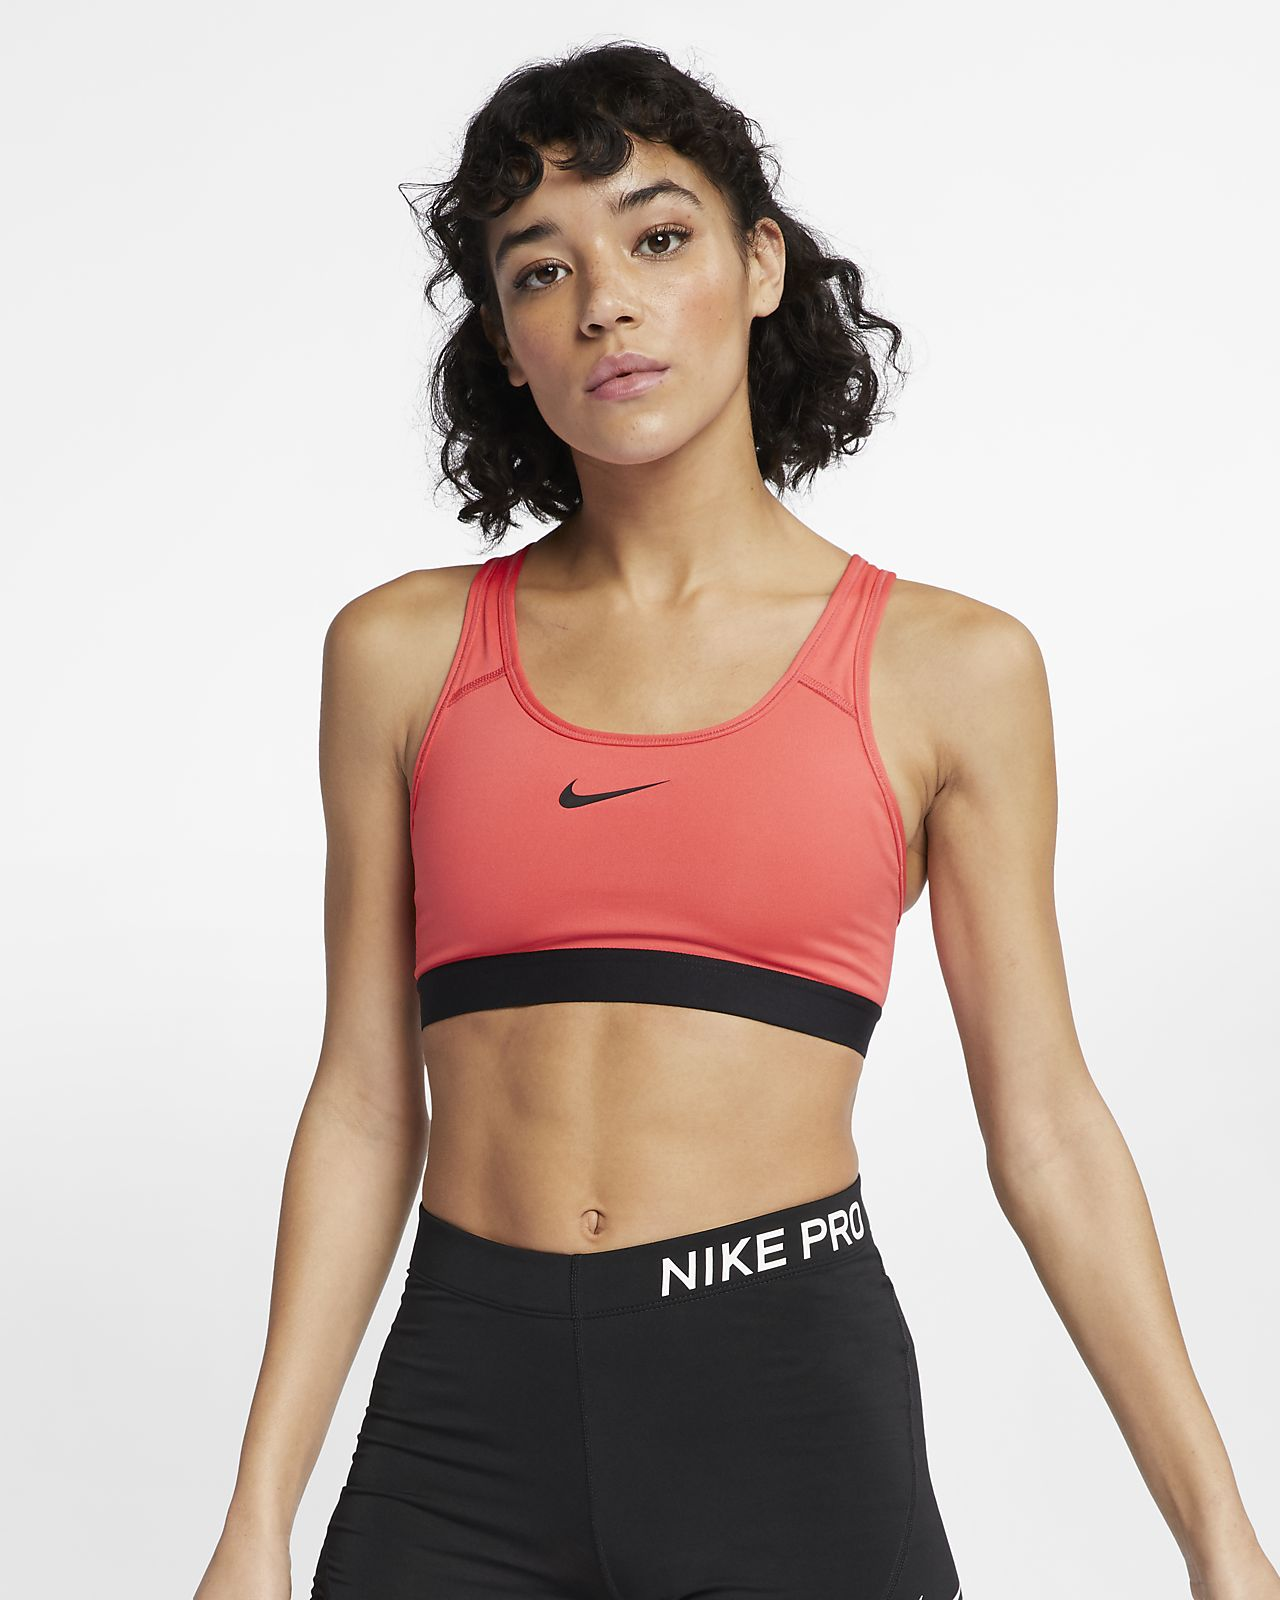 db34fa539d1 Nike Classic Padded Women s Medium-Support Sports Bra. Nike.com